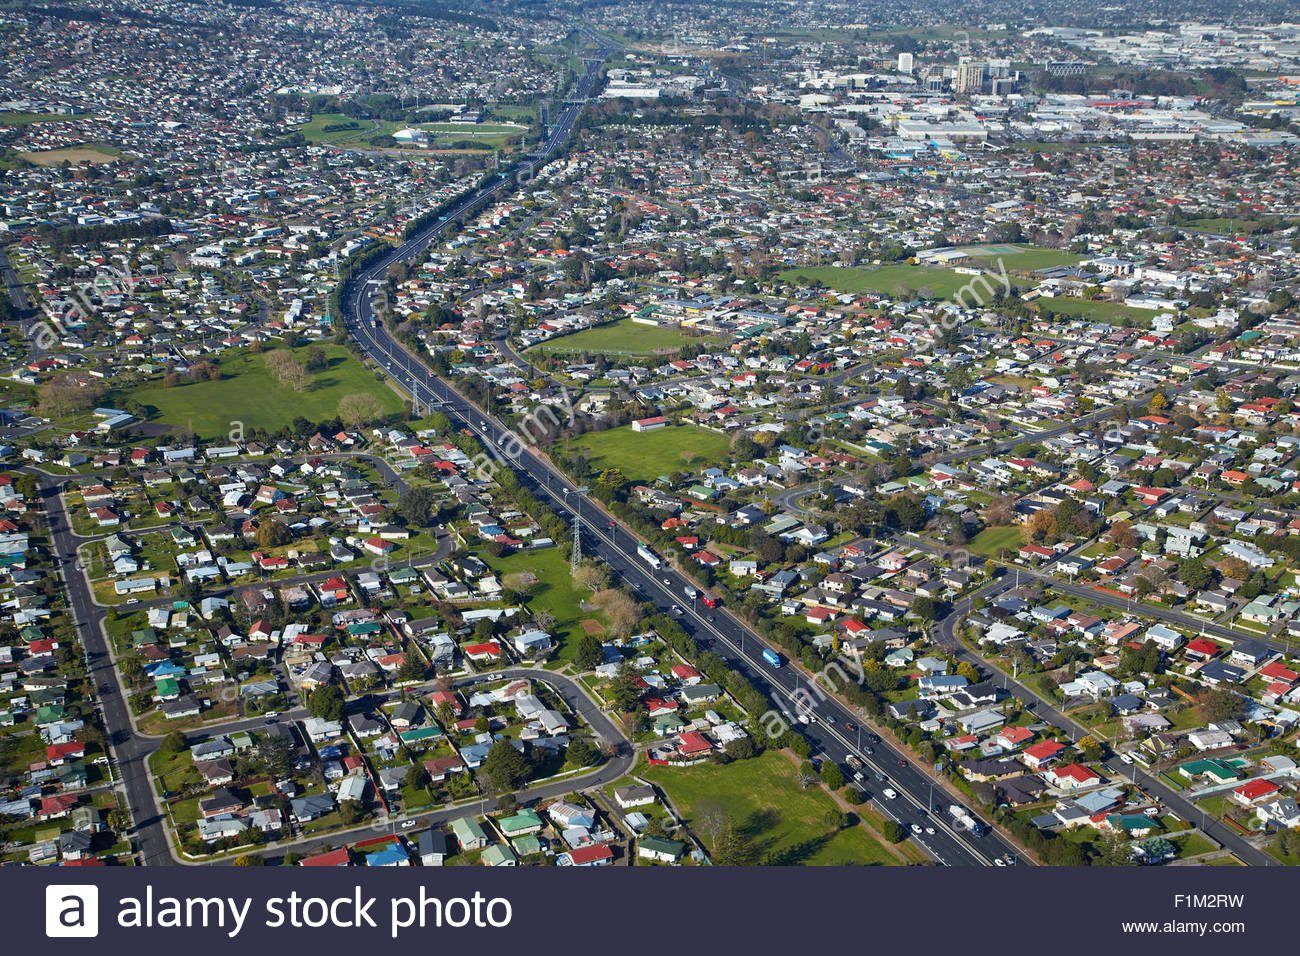 Telling the Southern Auckland Urban Geography, Urbanscape and its People's Story; Calling Southern Auckland Allies!